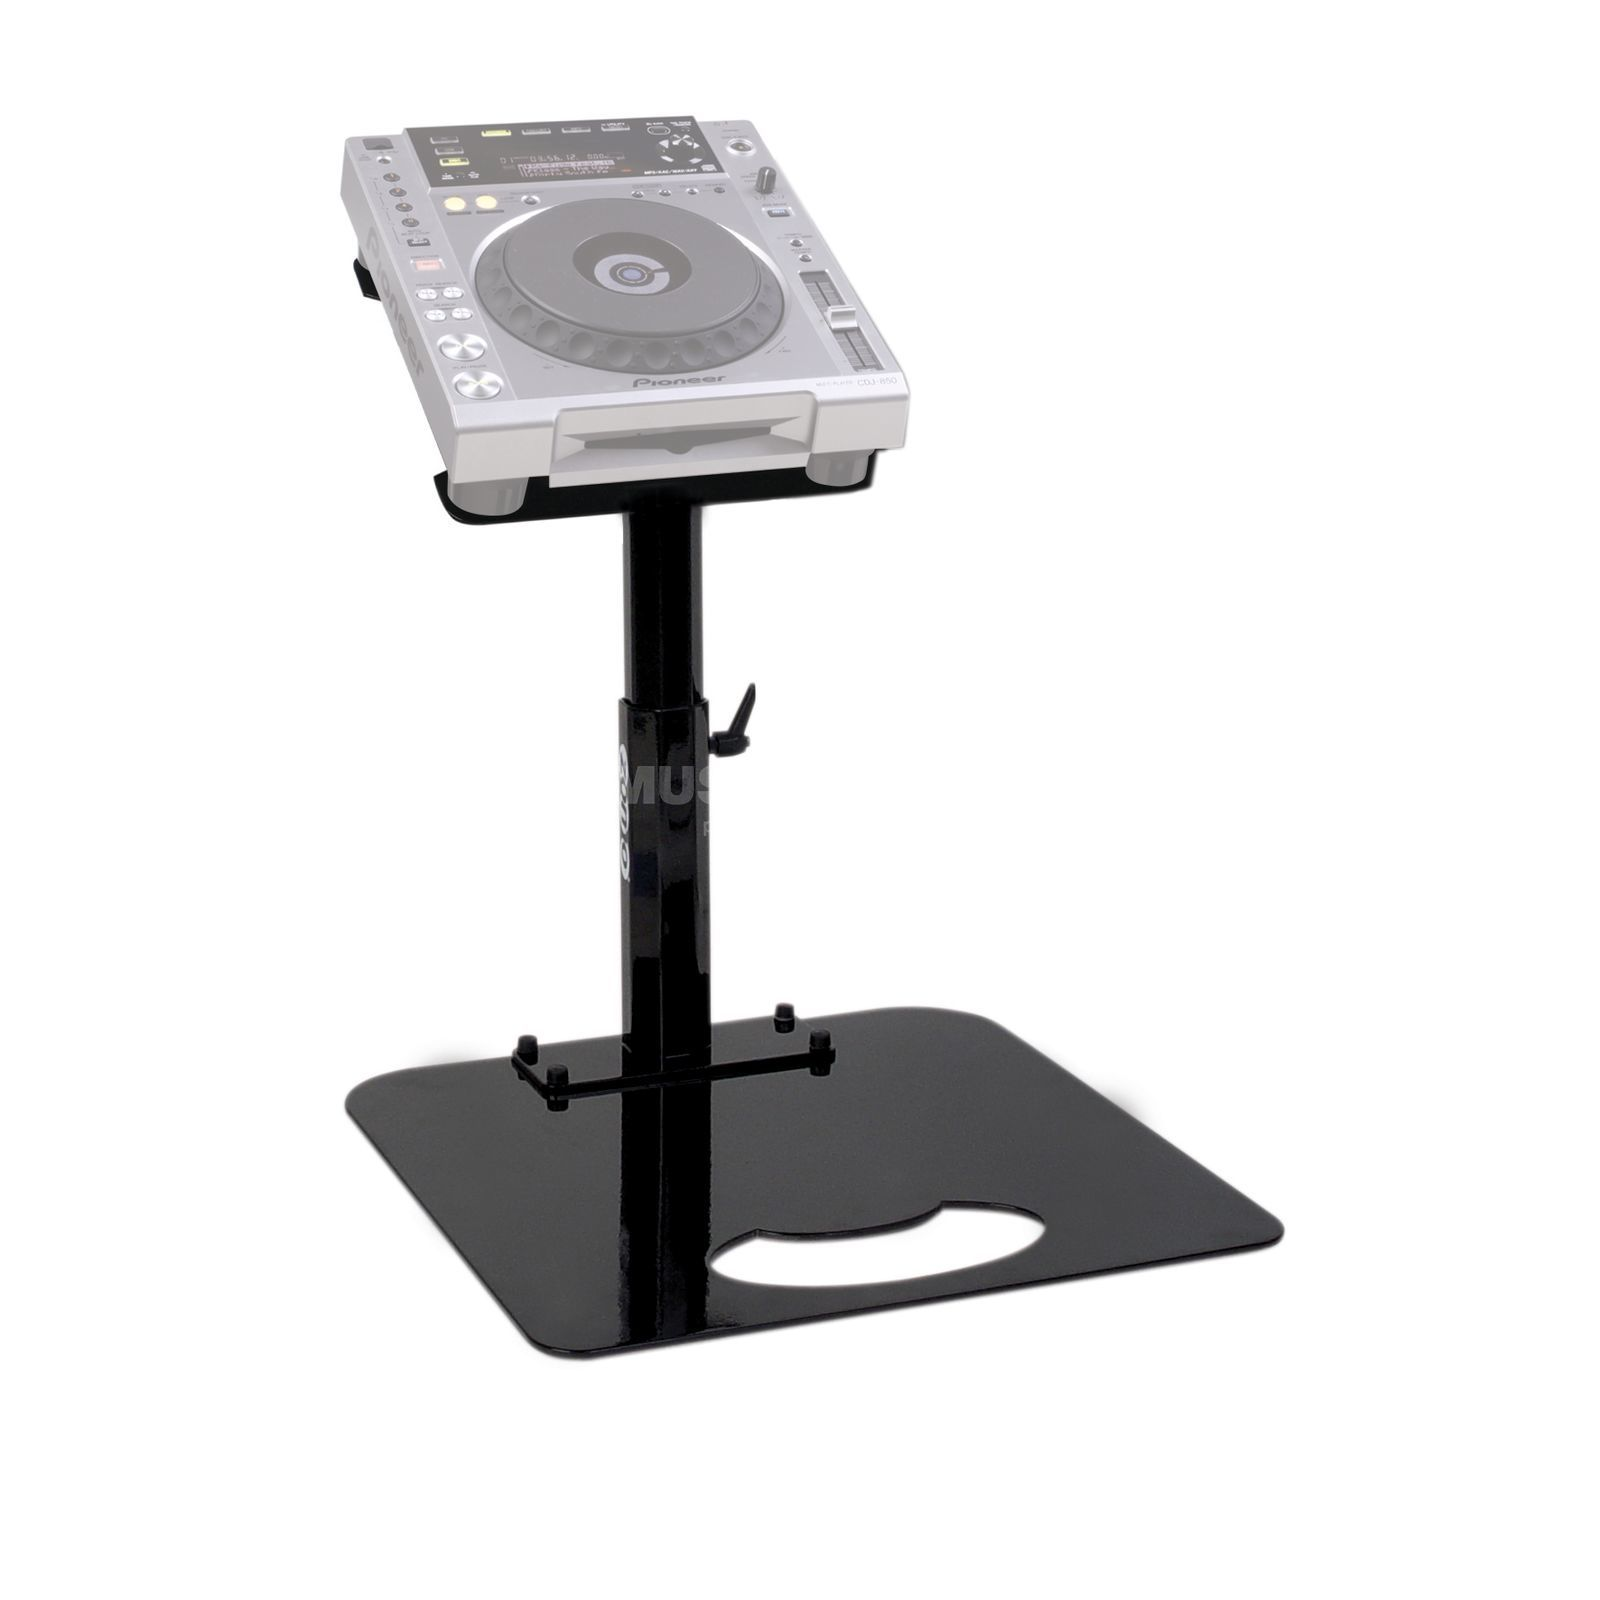 Zomo Pro Stand P-850 Black for 1x Pioneer CDJ-850 Изображение товара